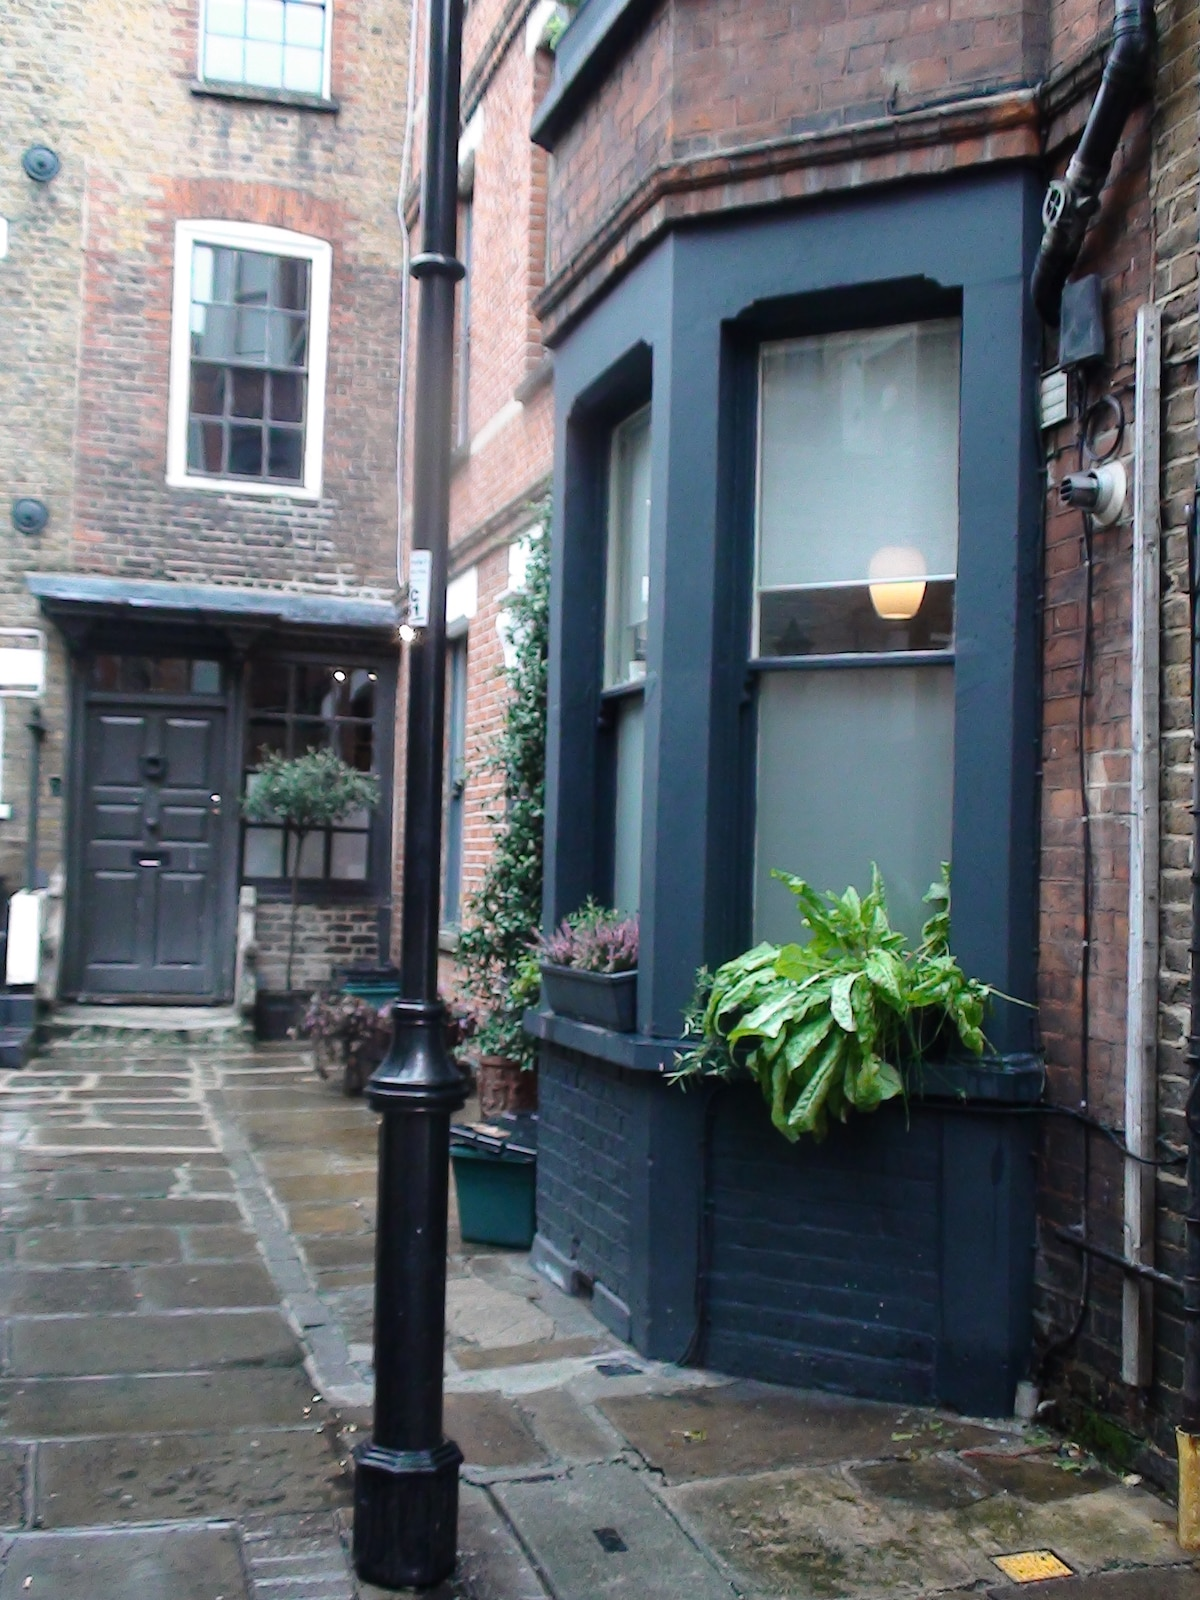 Charles Dickens stayed in the house on the corner...parts of it date back to the 1500's